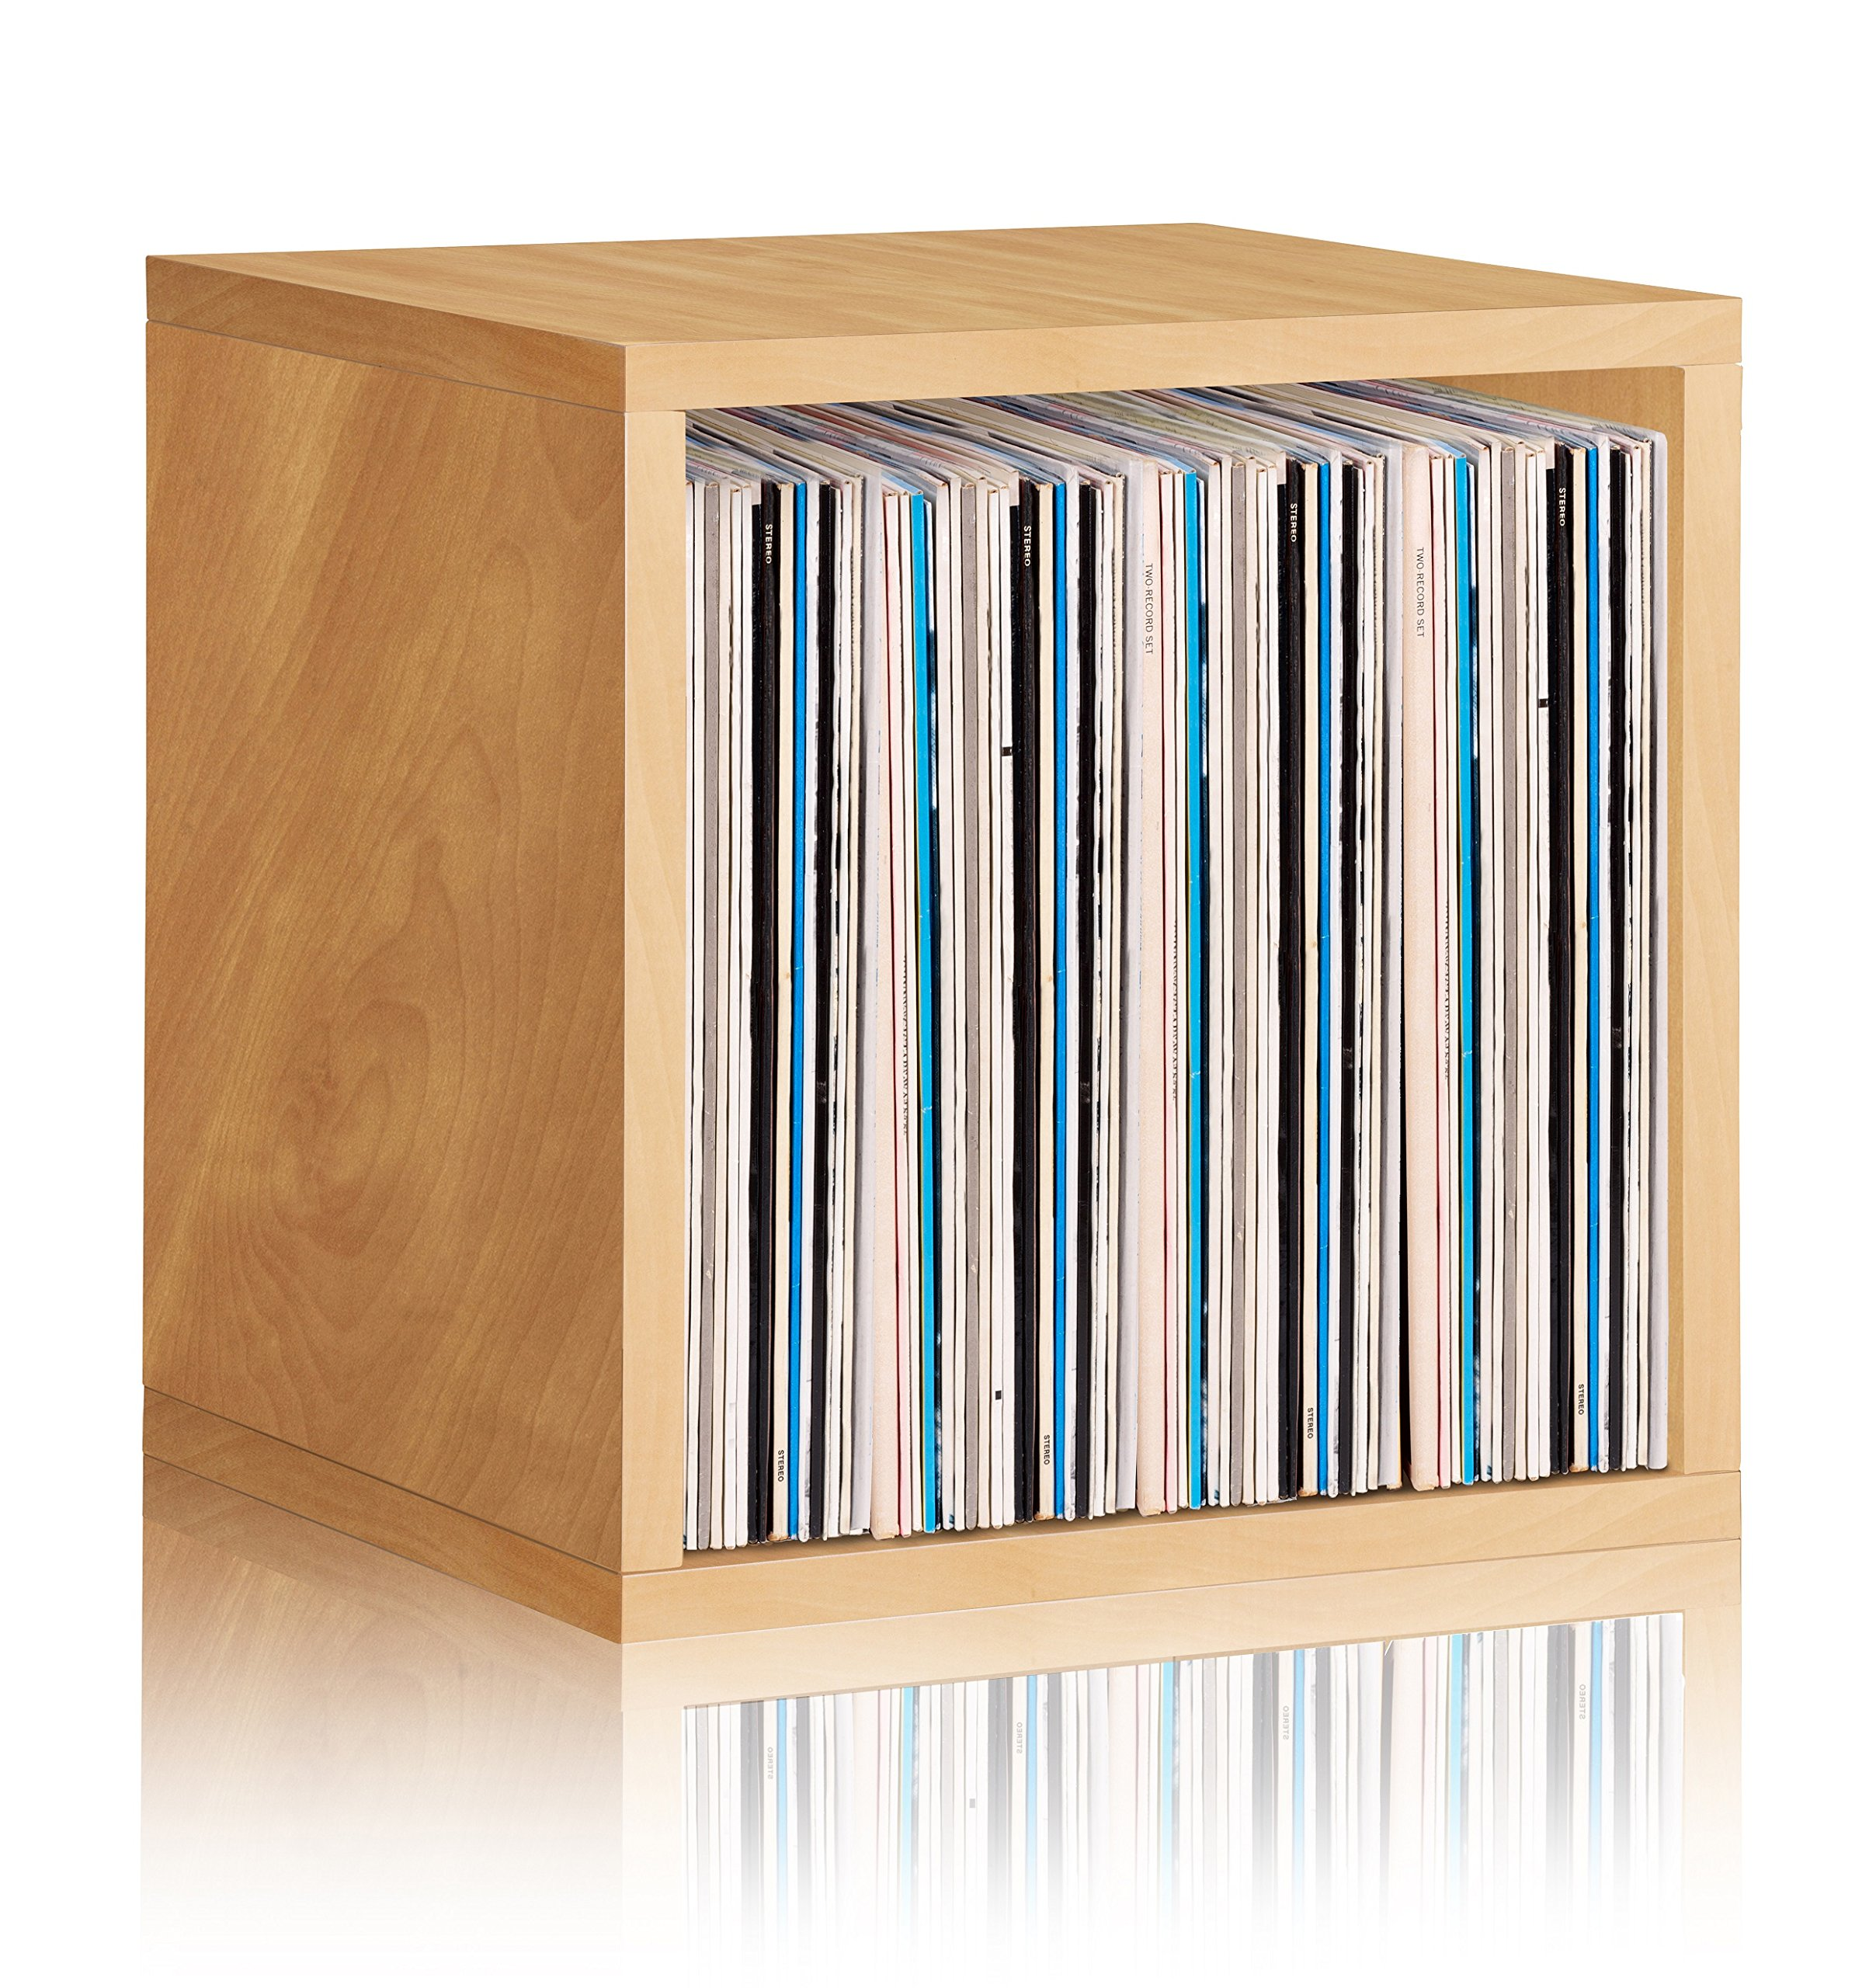 Way Basics Vinyl Record Storage Cube Stackable LP Record Album Shelf, Natural (world's easiest tool-free assembly and made from sustainable non-toxic zBoard paperboard) 5 Star Service Guaranteed by Way Basics